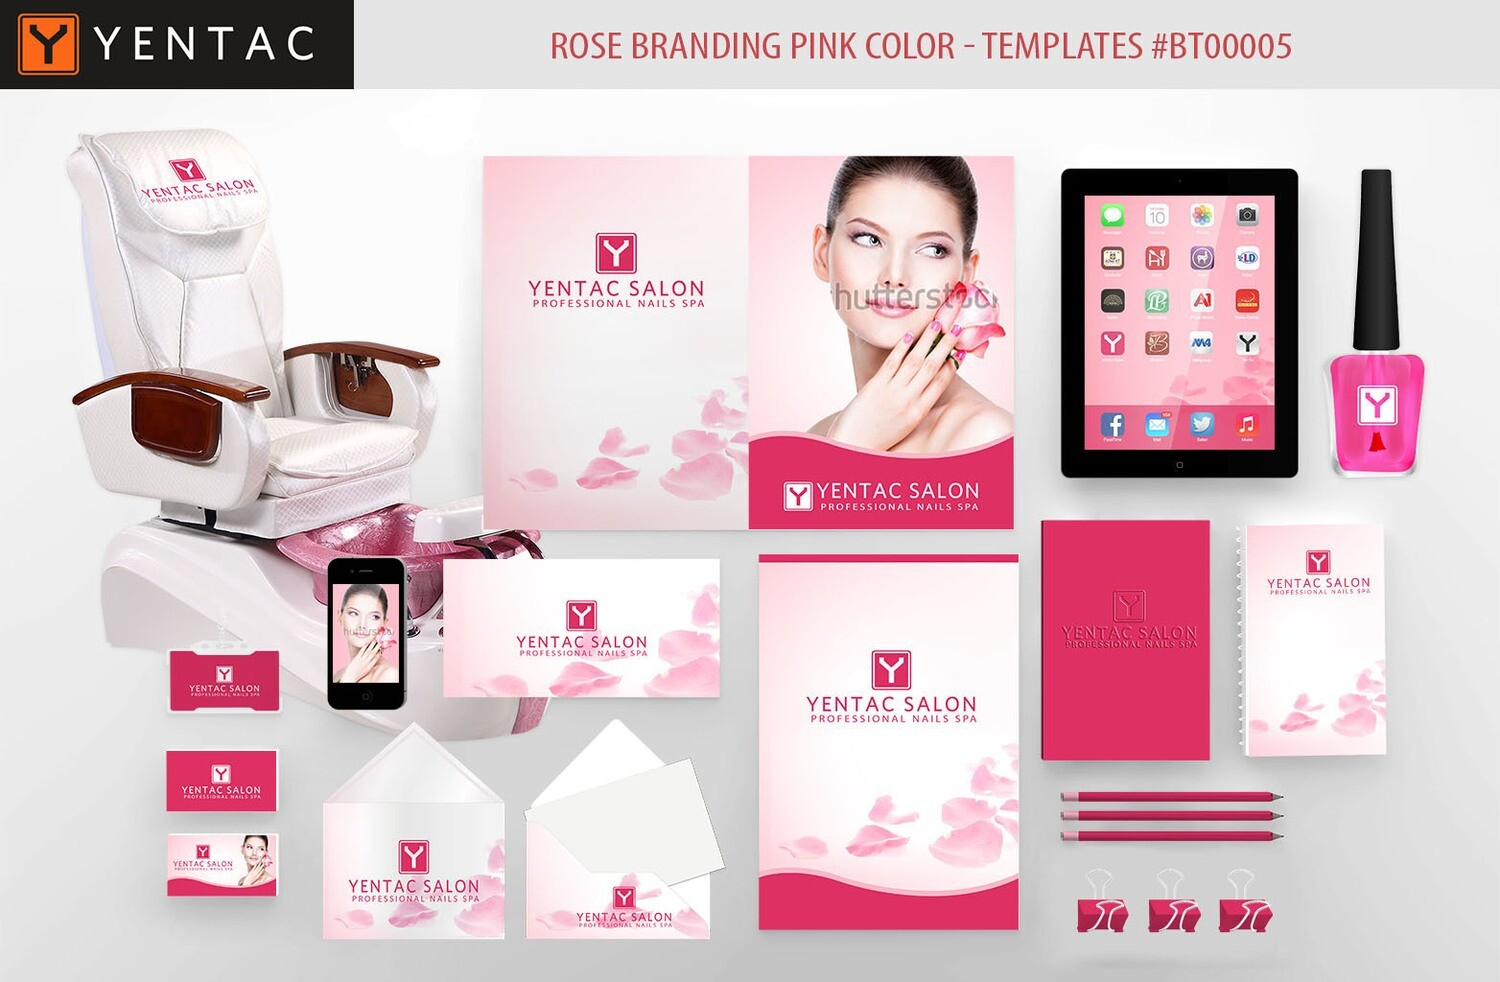 Rose Branding  Pink Color - Stationary Mockup - YENTAC Nail Salon Templates:  BT000005